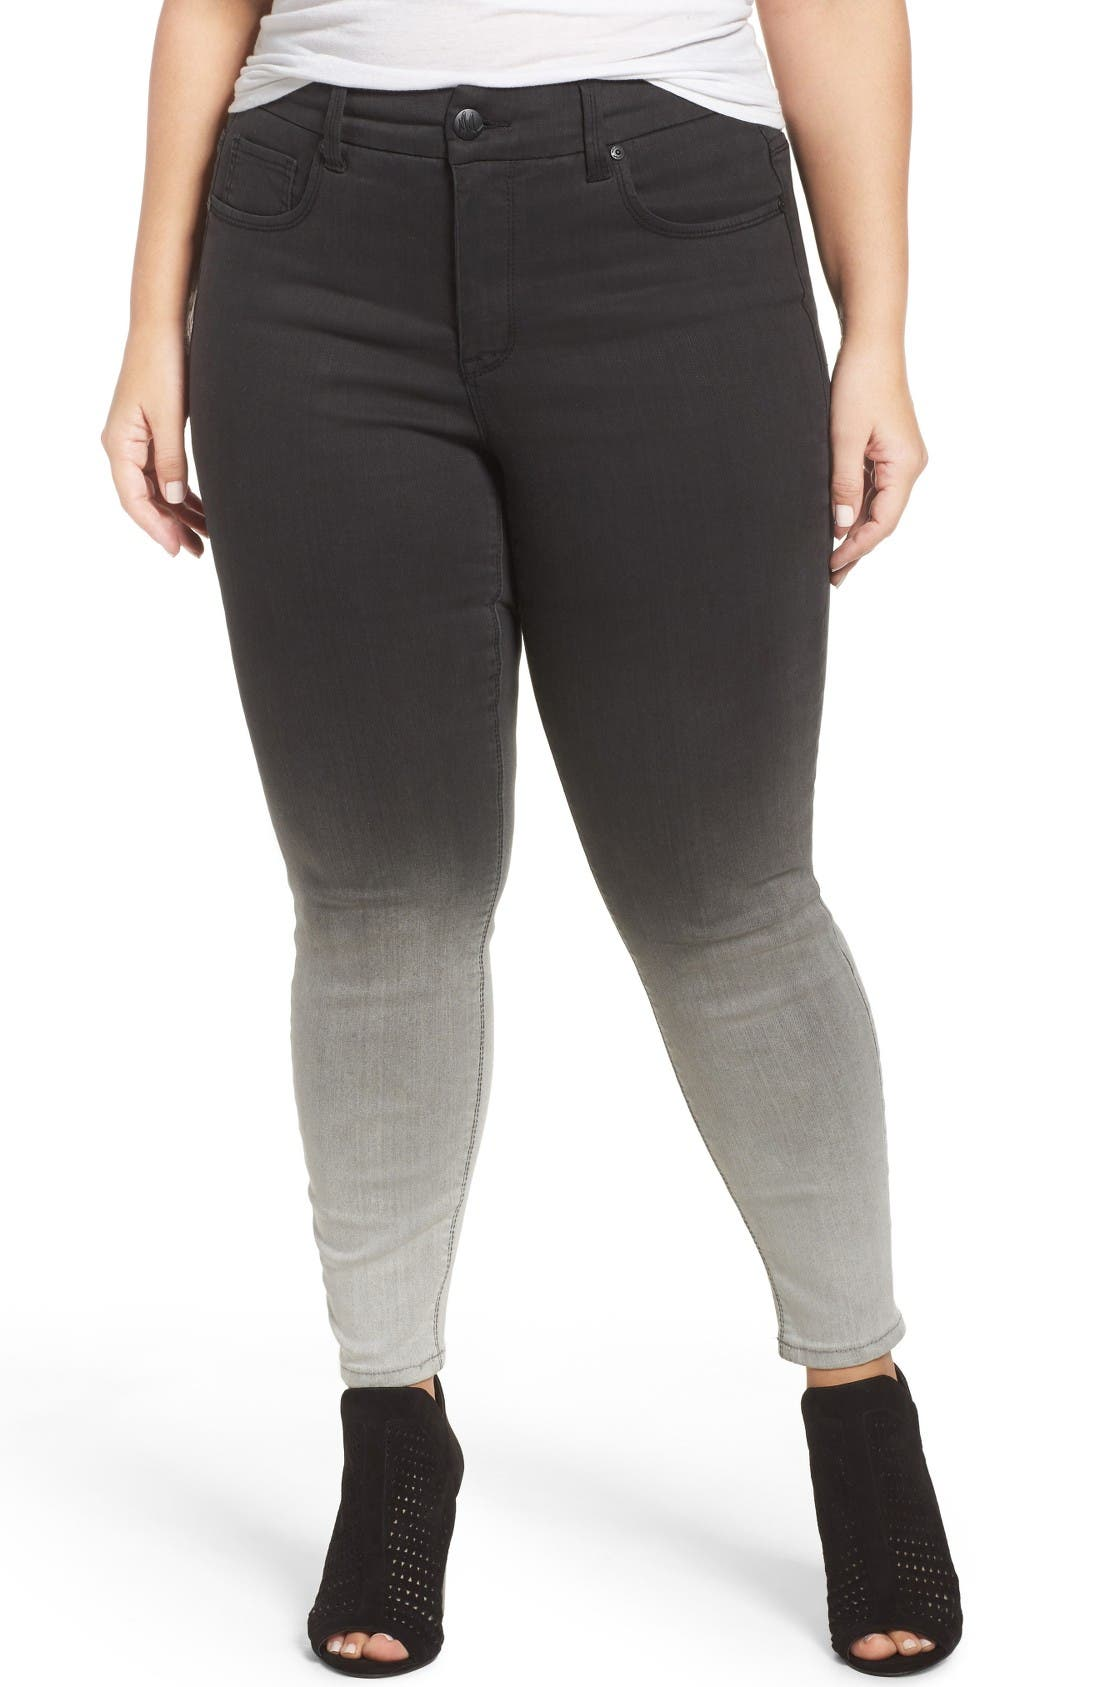 Alternate Image 1 Selected - Melissa McCarthy Seven7 Stretch Ombré Pencil Jeans (Dover) (Plus Size)